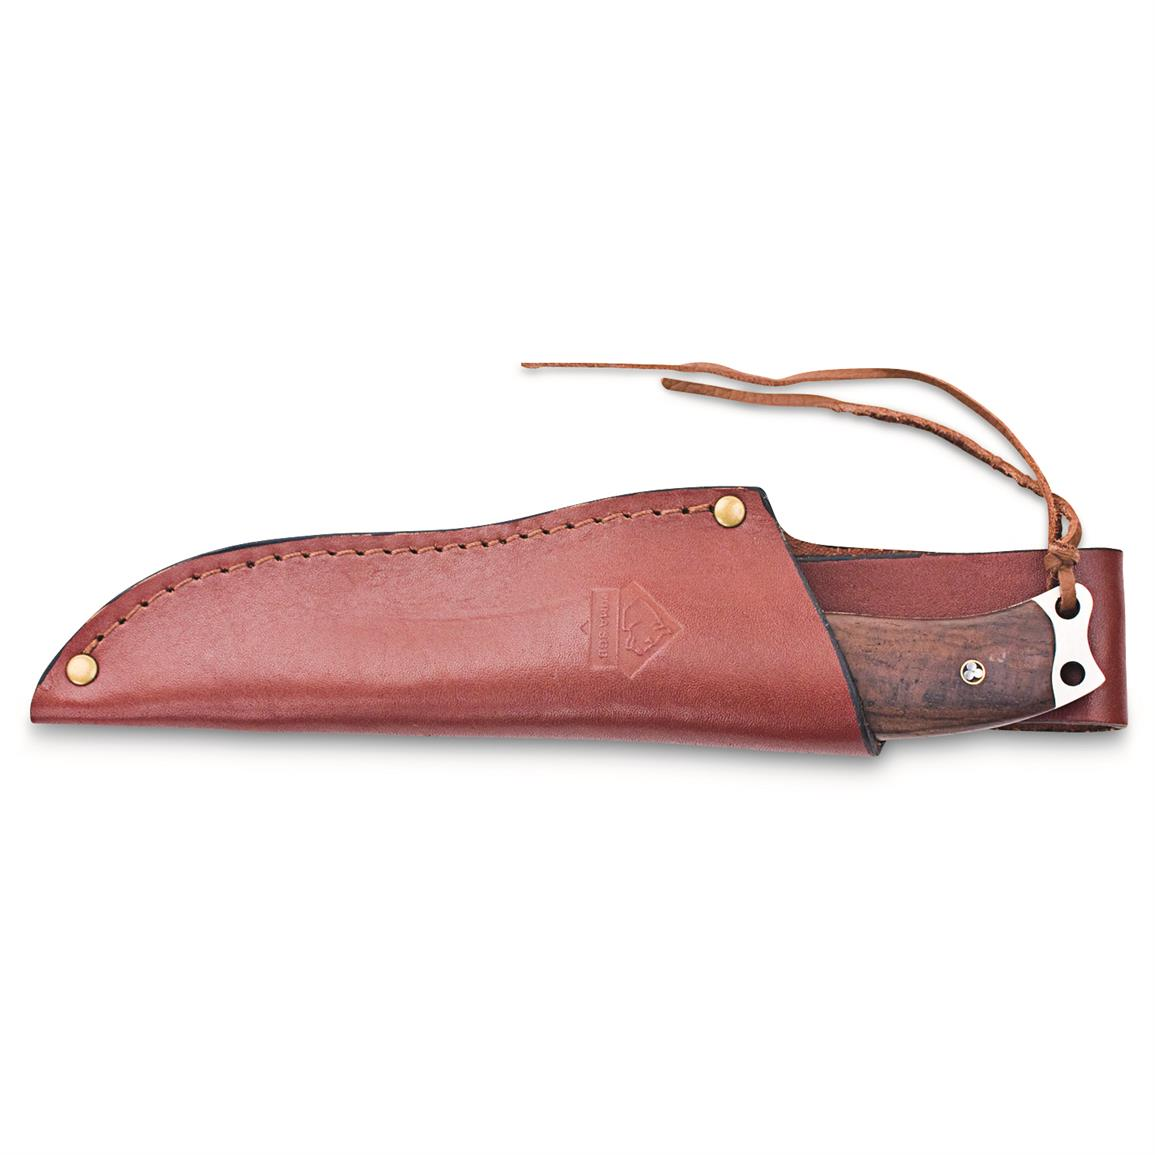 Includes leather sheath for easy transport